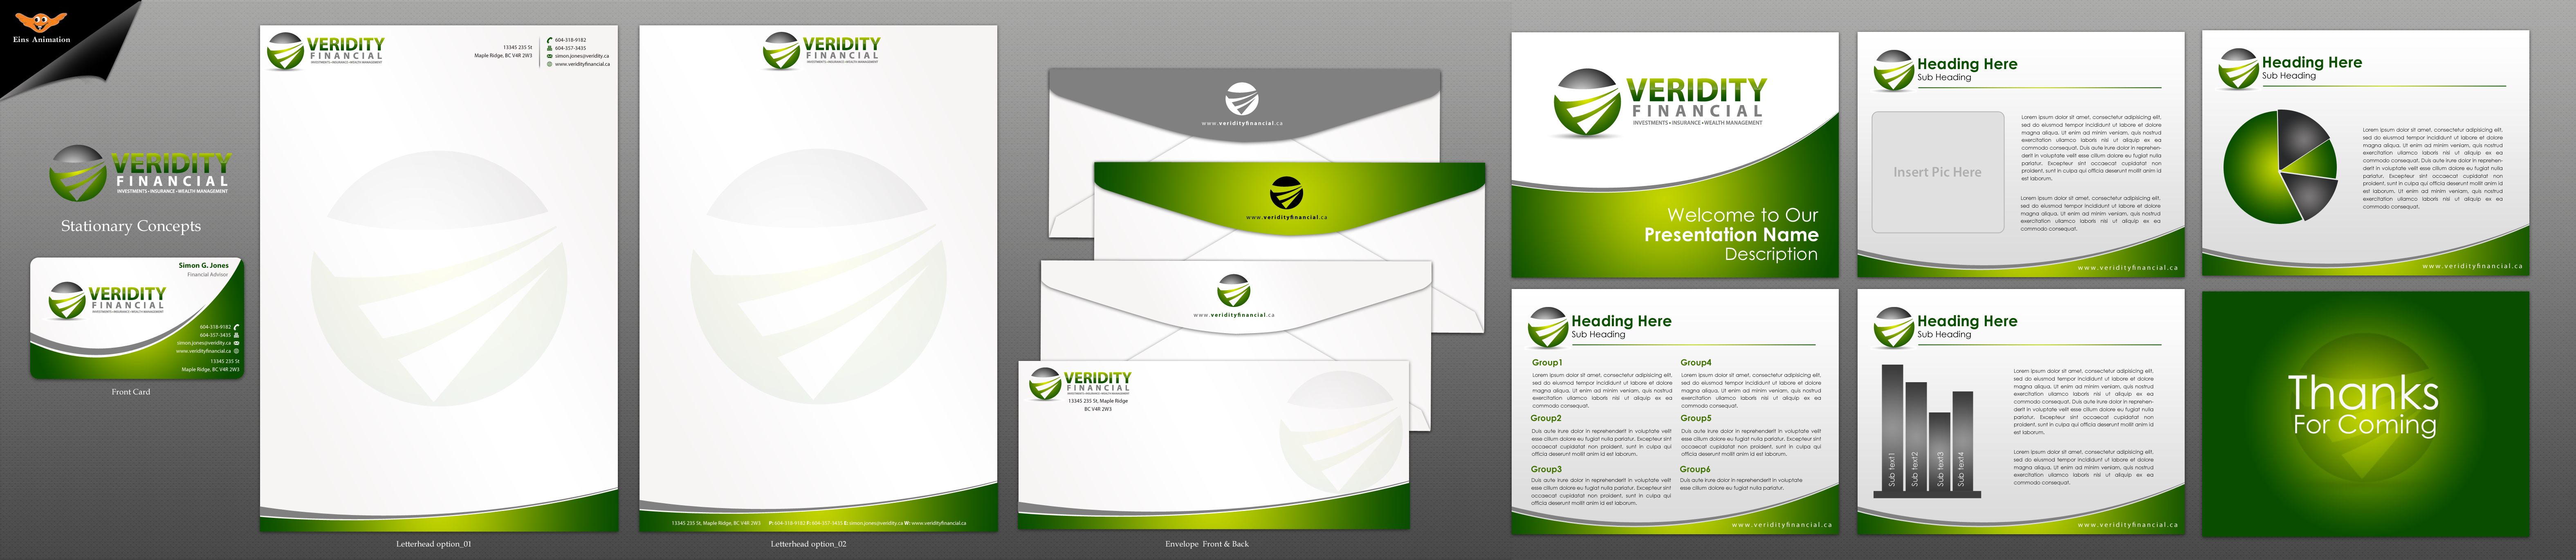 Stationery, business card and Powerpoint template - Financial Services